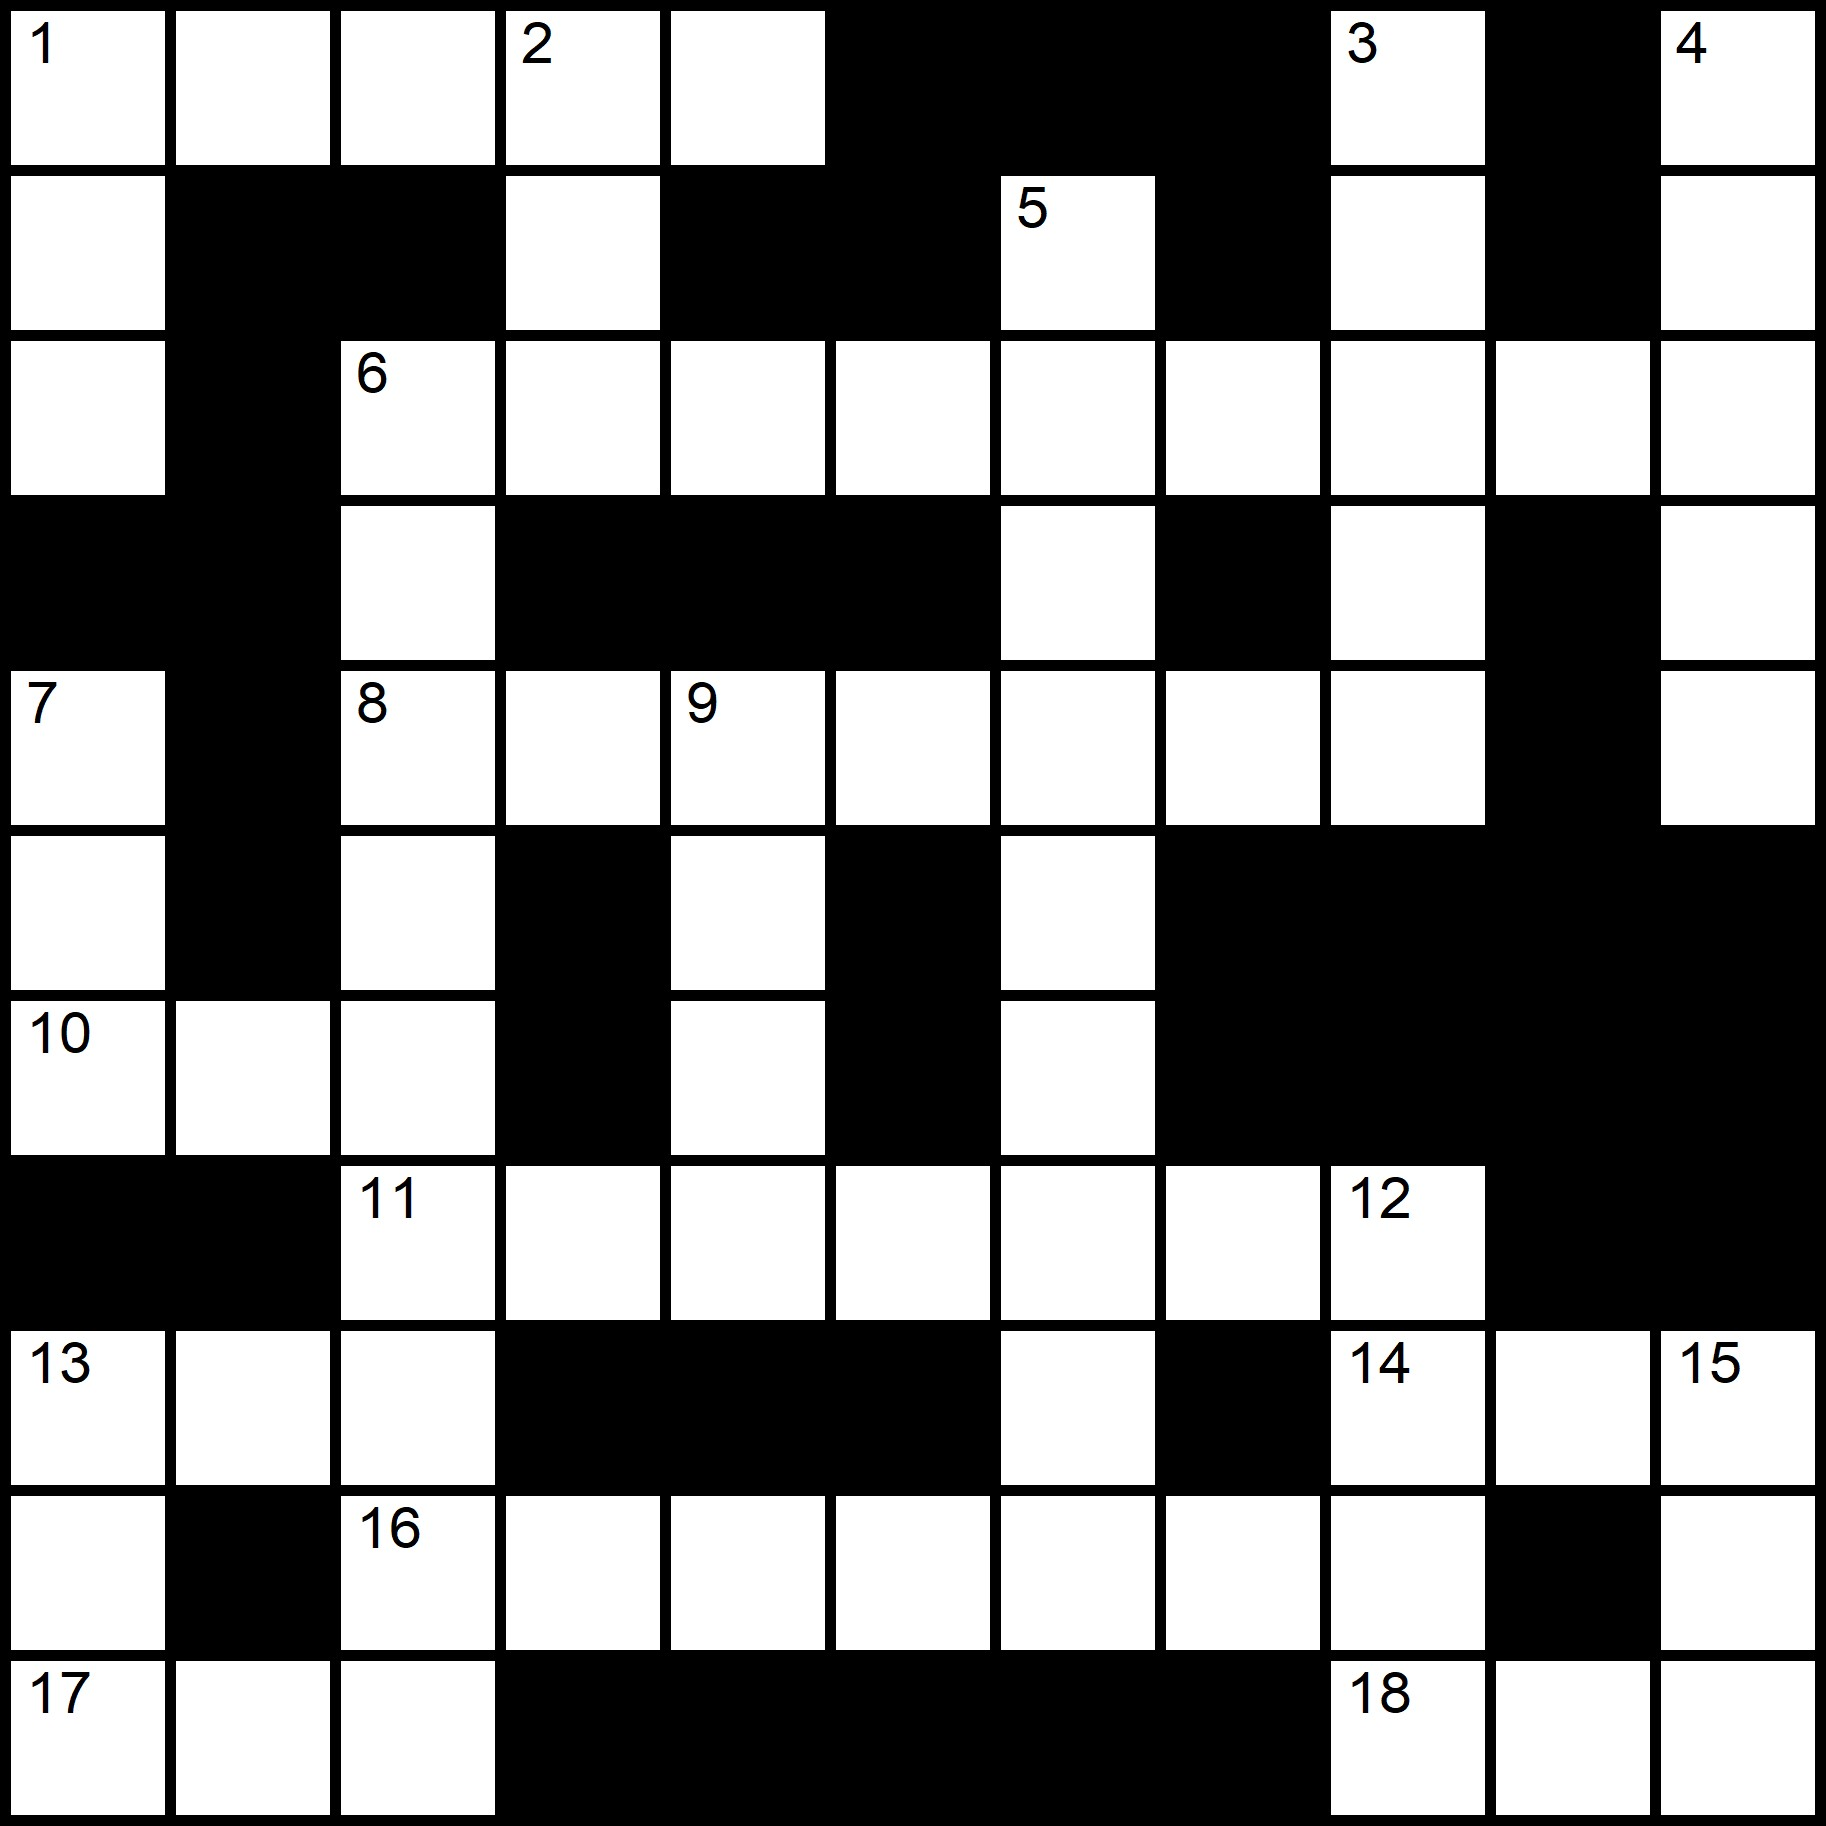 Simple Crosswords - Placidus Flora - Crossword number ten